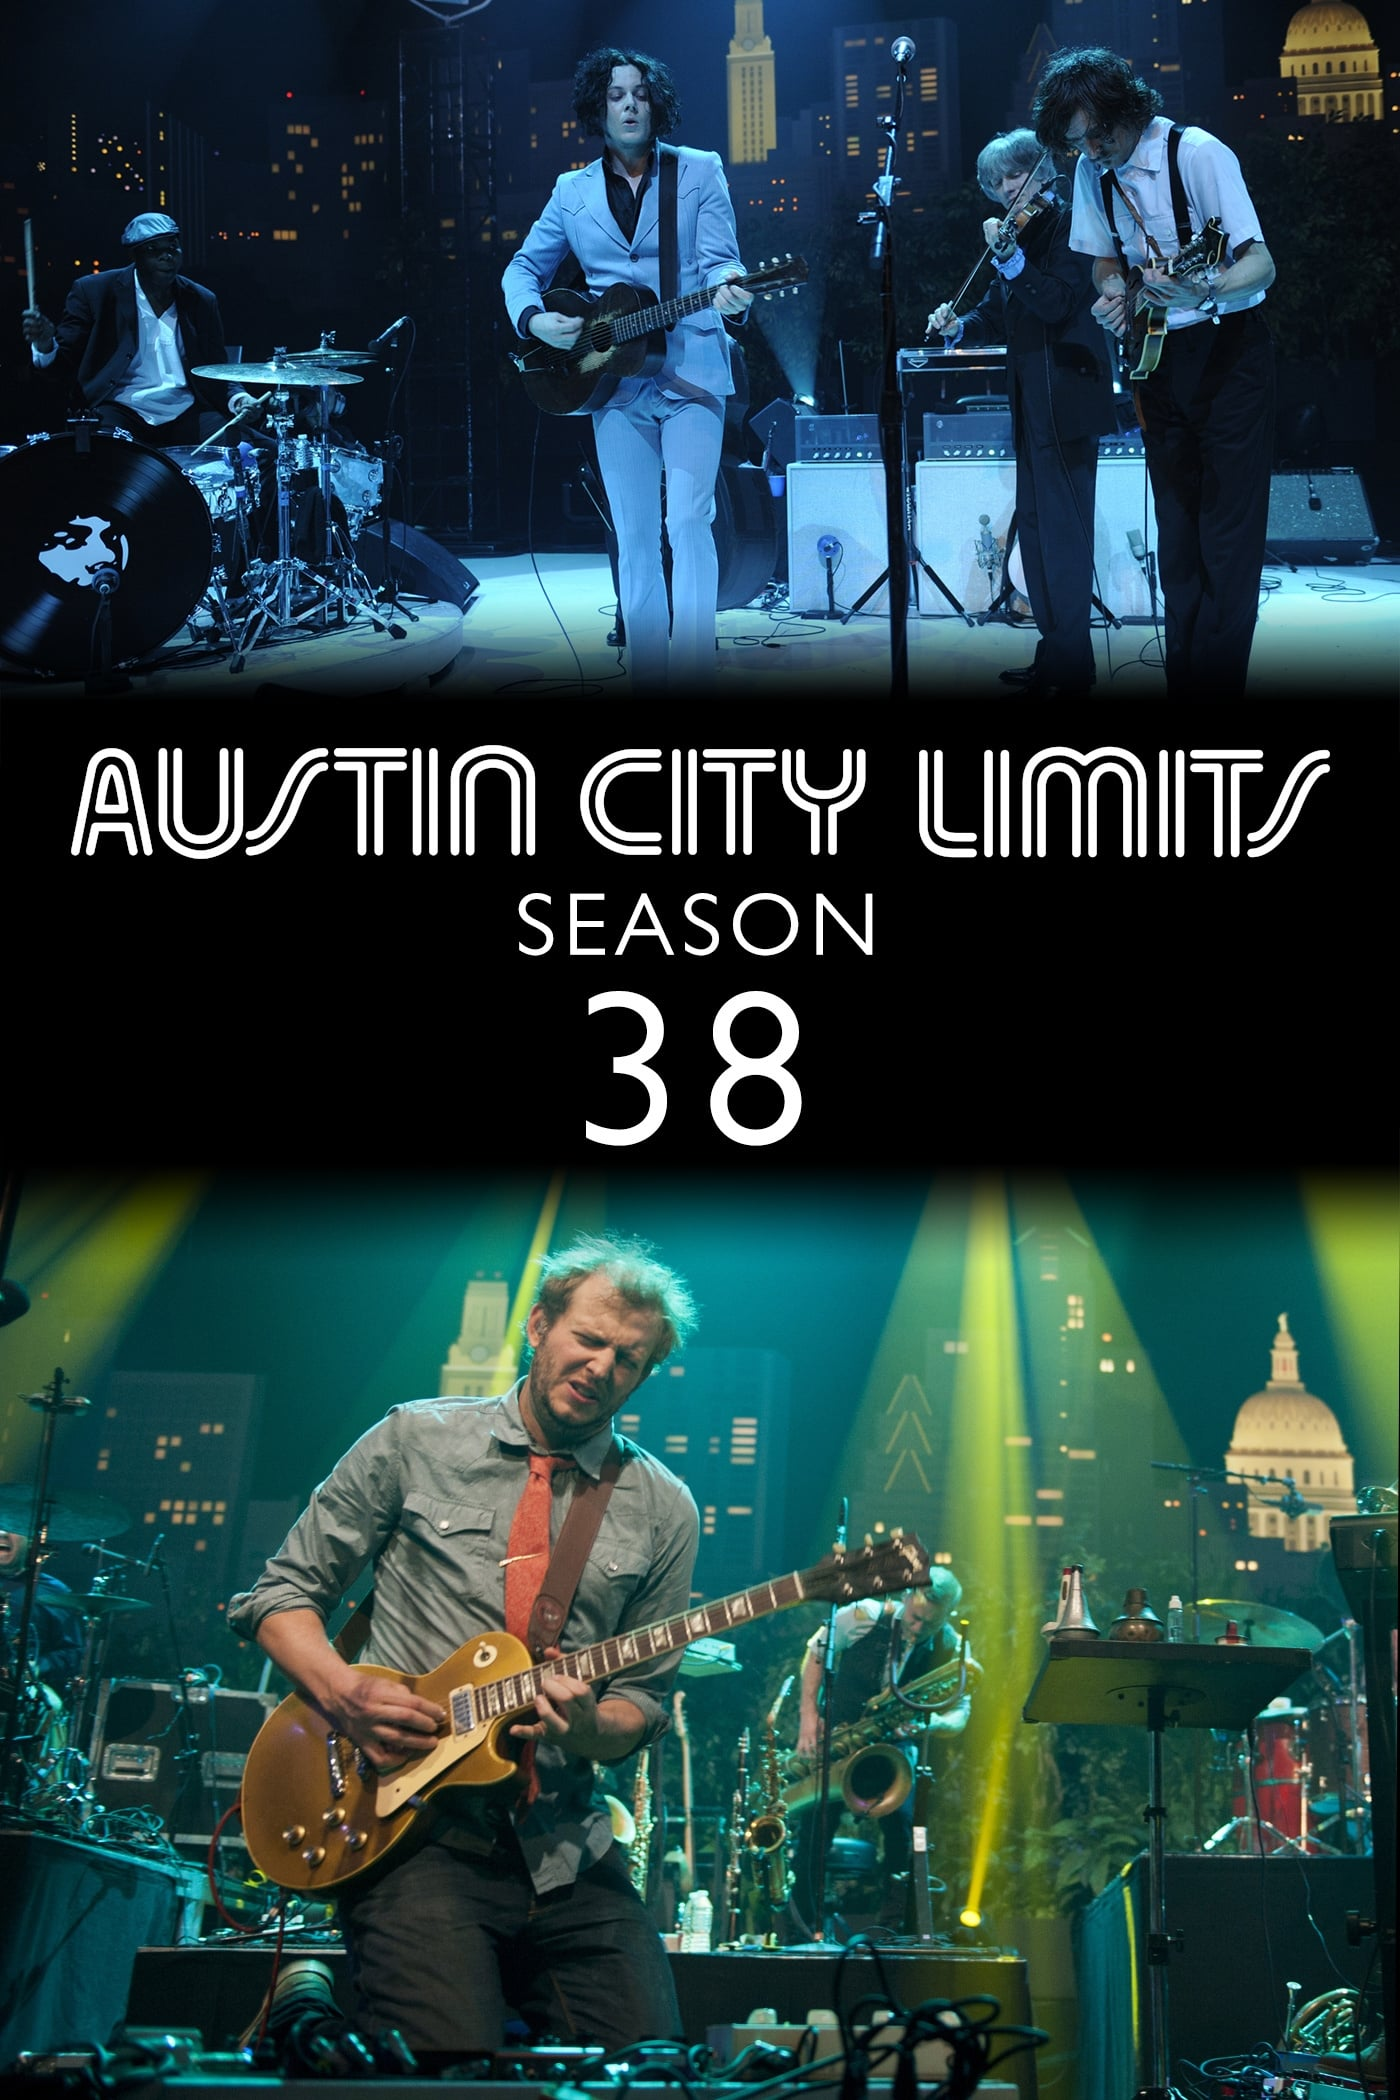 Austin City Limits Season 38